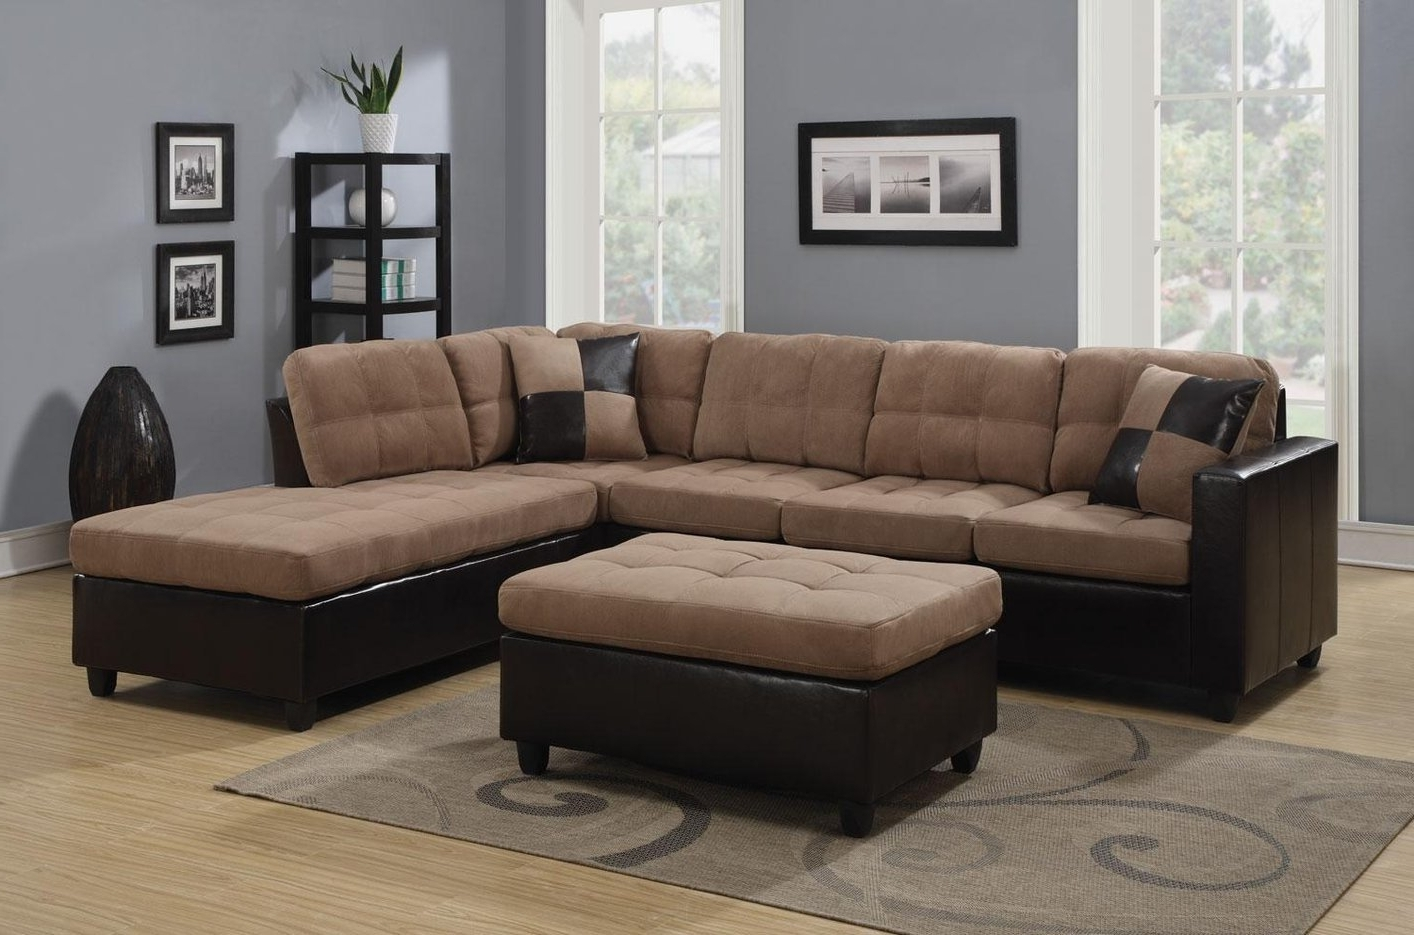 Beige Sectionals With Chaise With Fashionable Sectional Sofa Design: Amazing Beige Sectional Sofas Beige Leather (View 8 of 15)